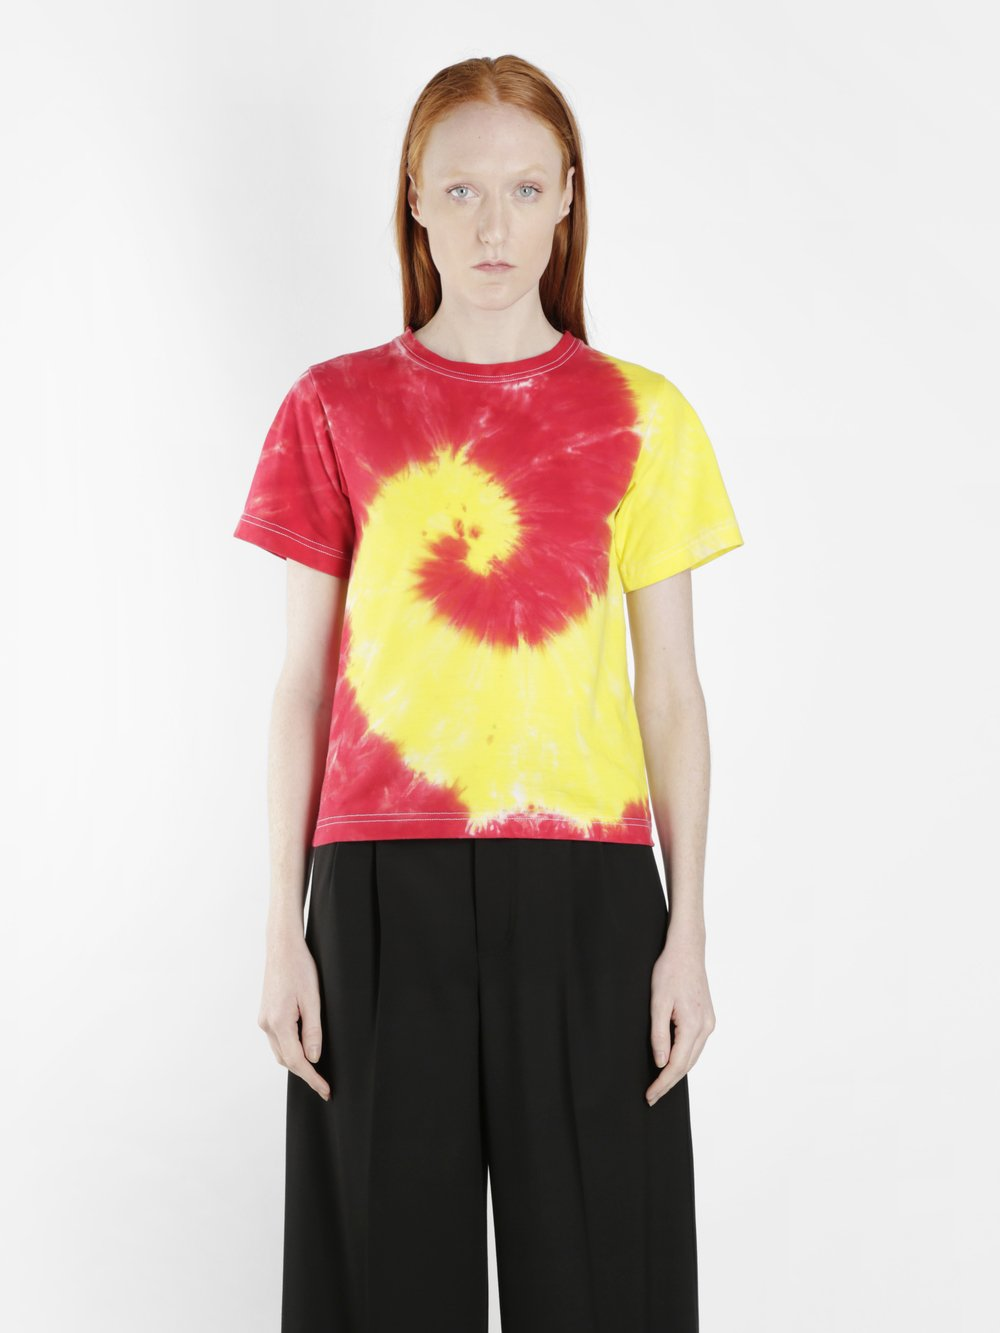 KWAIDAN EDITIONS WOMEN'S MULTICOLOR TIE DYE T-SHIRT